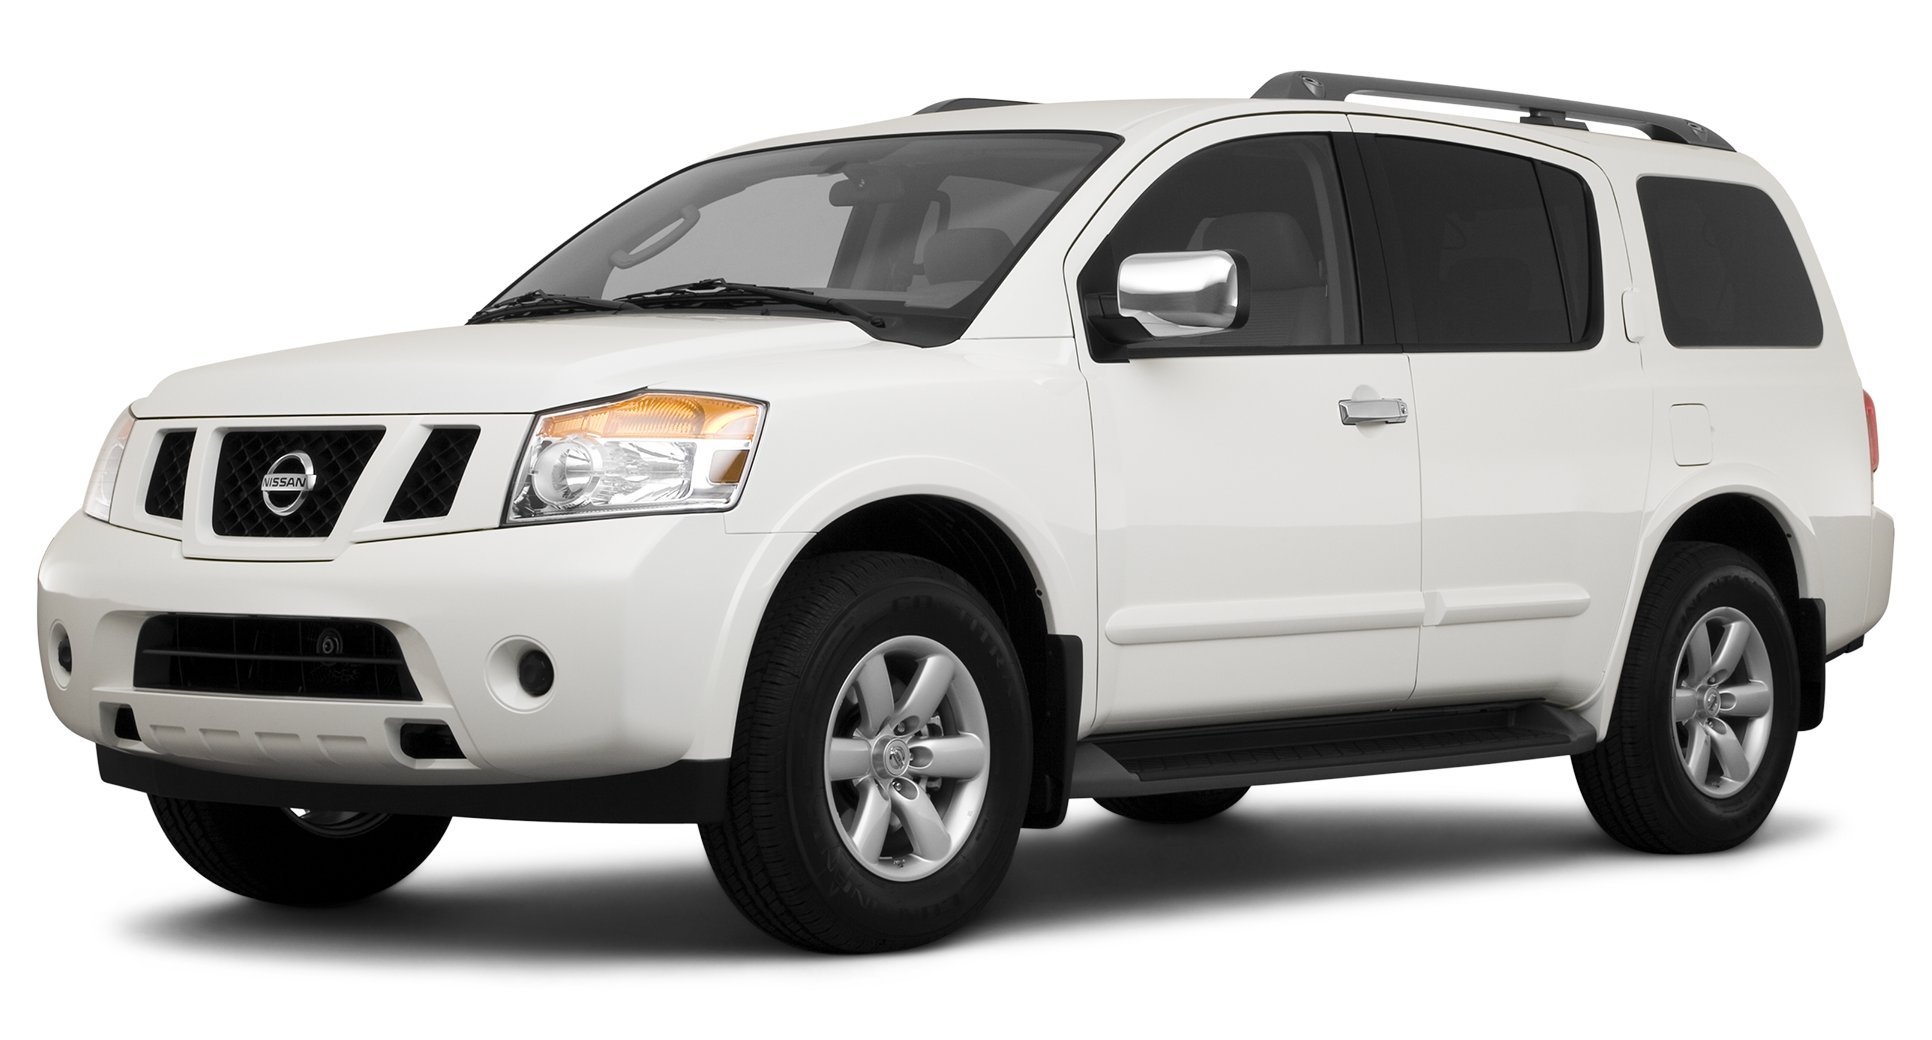 amazon com 2010 toyota sequoia reviews images and specs vehicles rh amazon com 2007 Sequoia 2010 toyota sequoia user manual